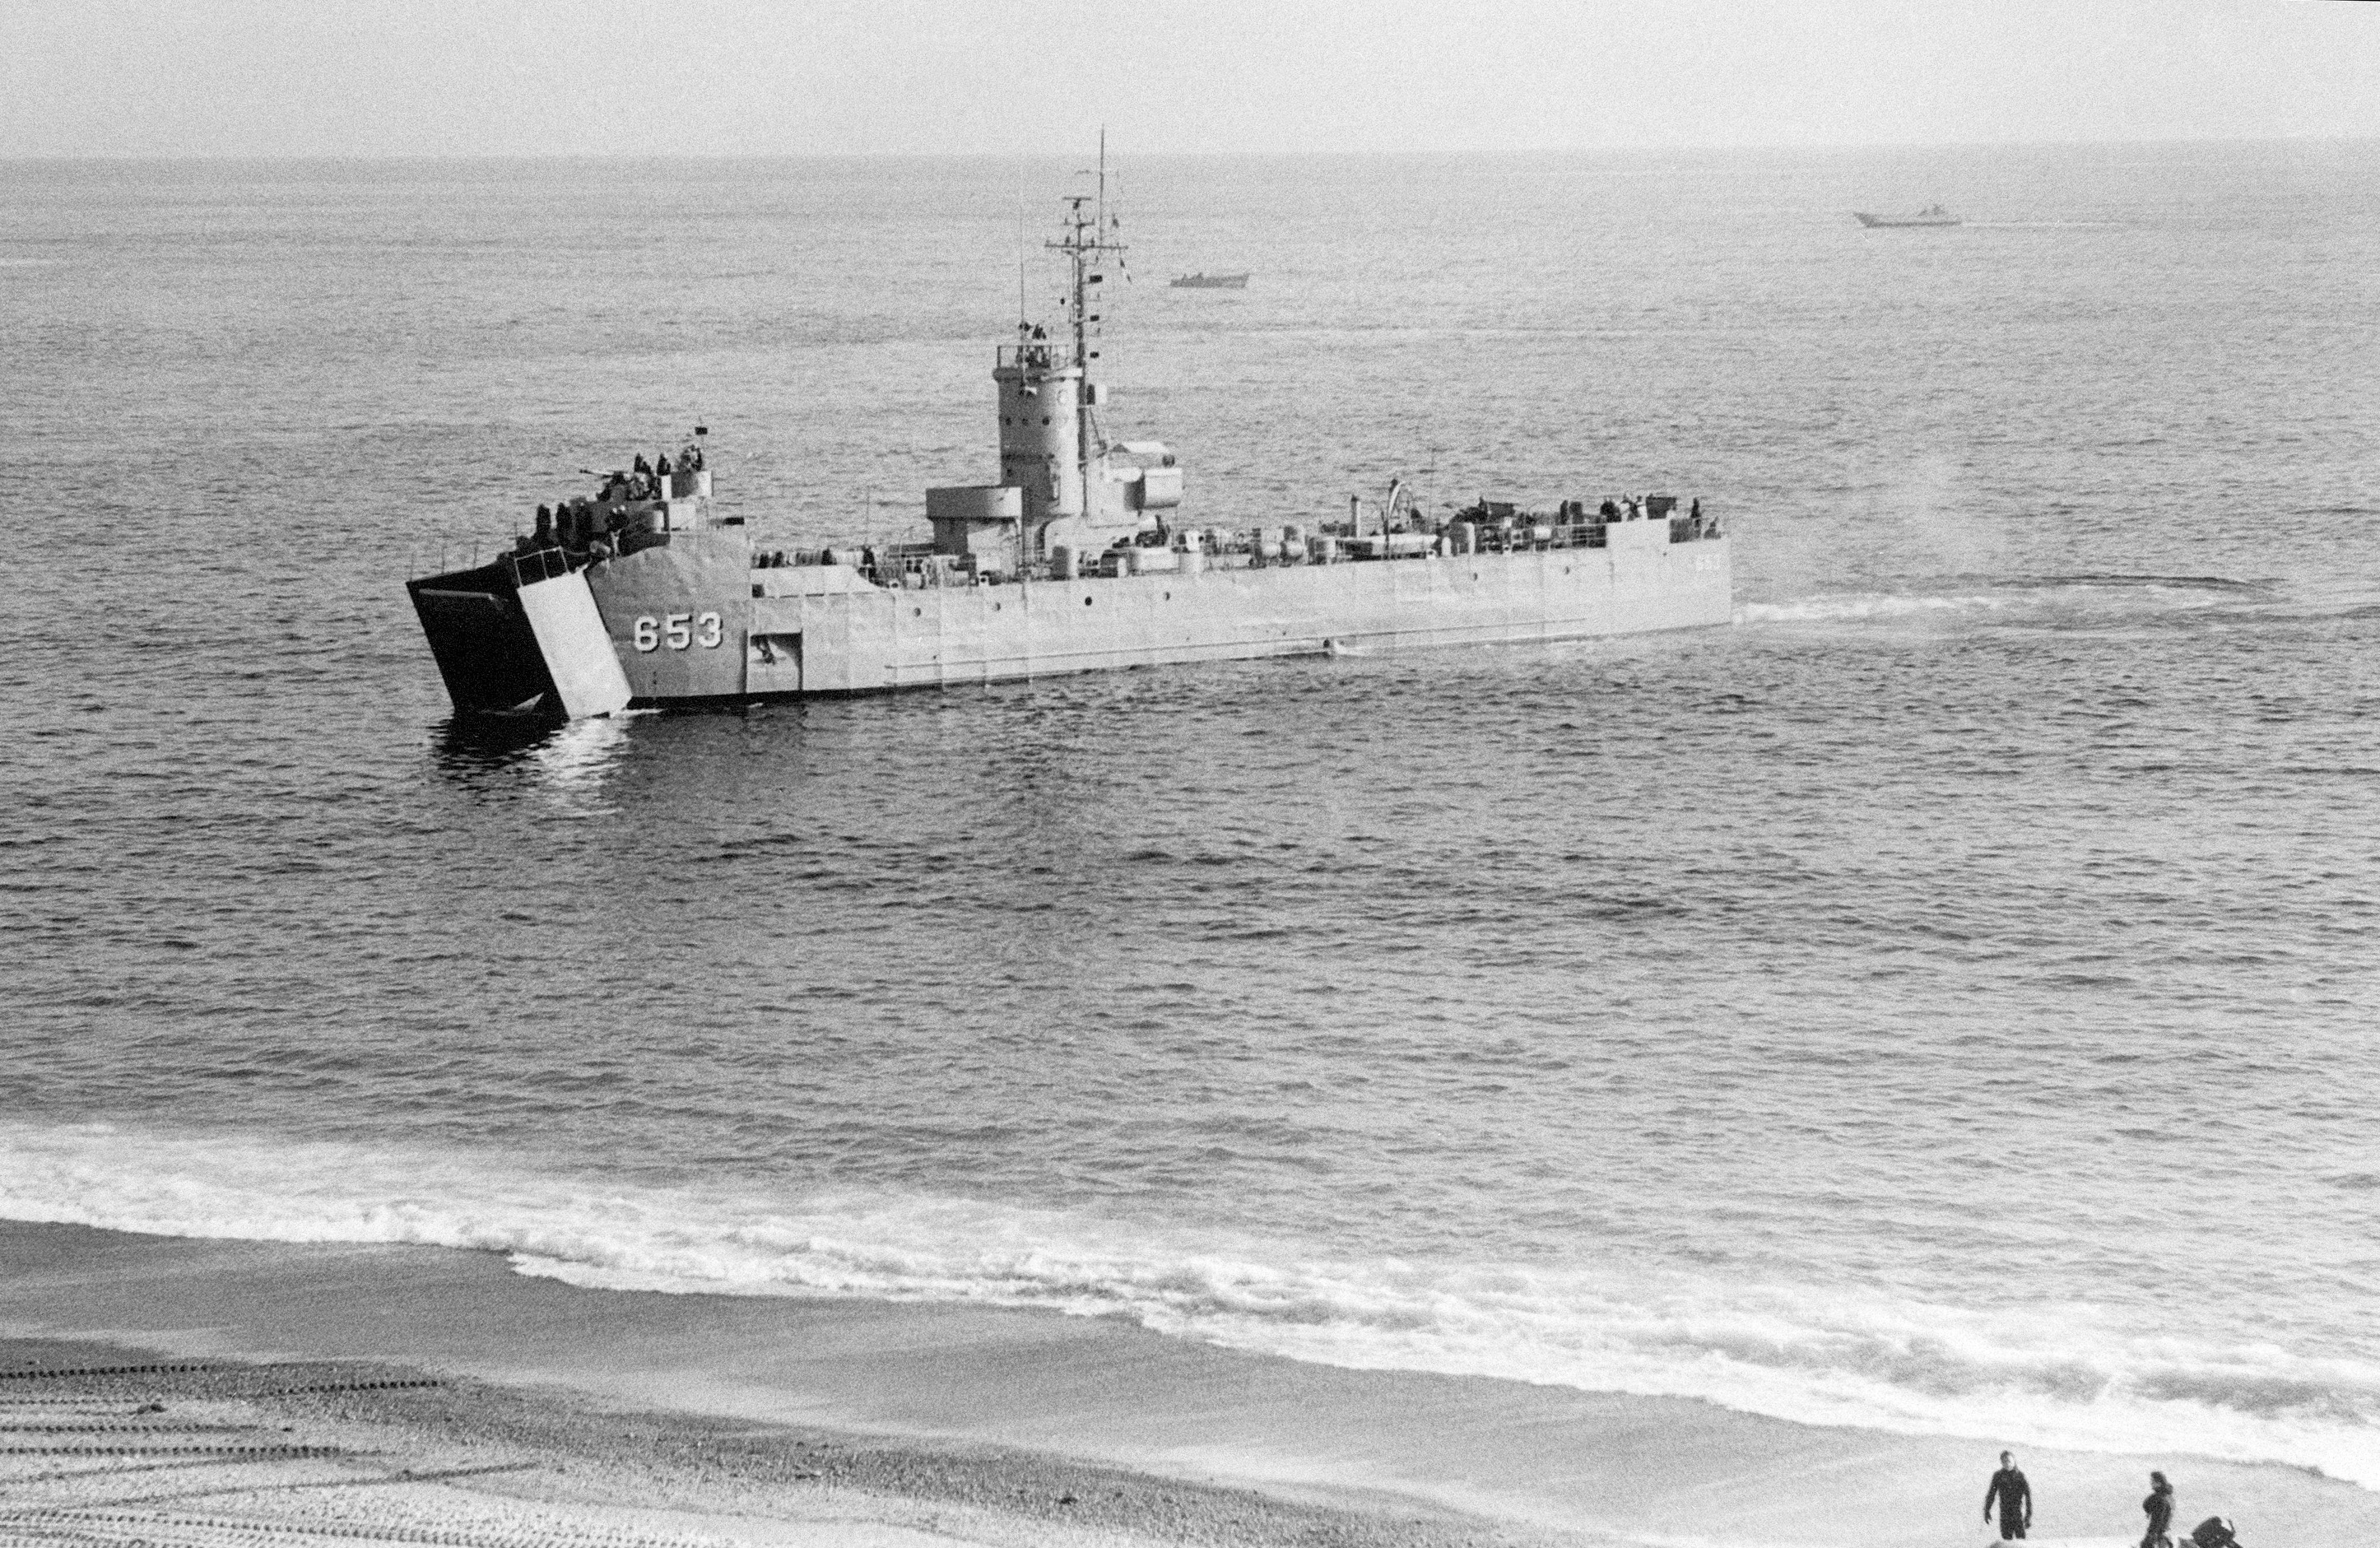 File:Republic of Korea ship Gadeok (LSM 653) approaches beach.jpeg ...